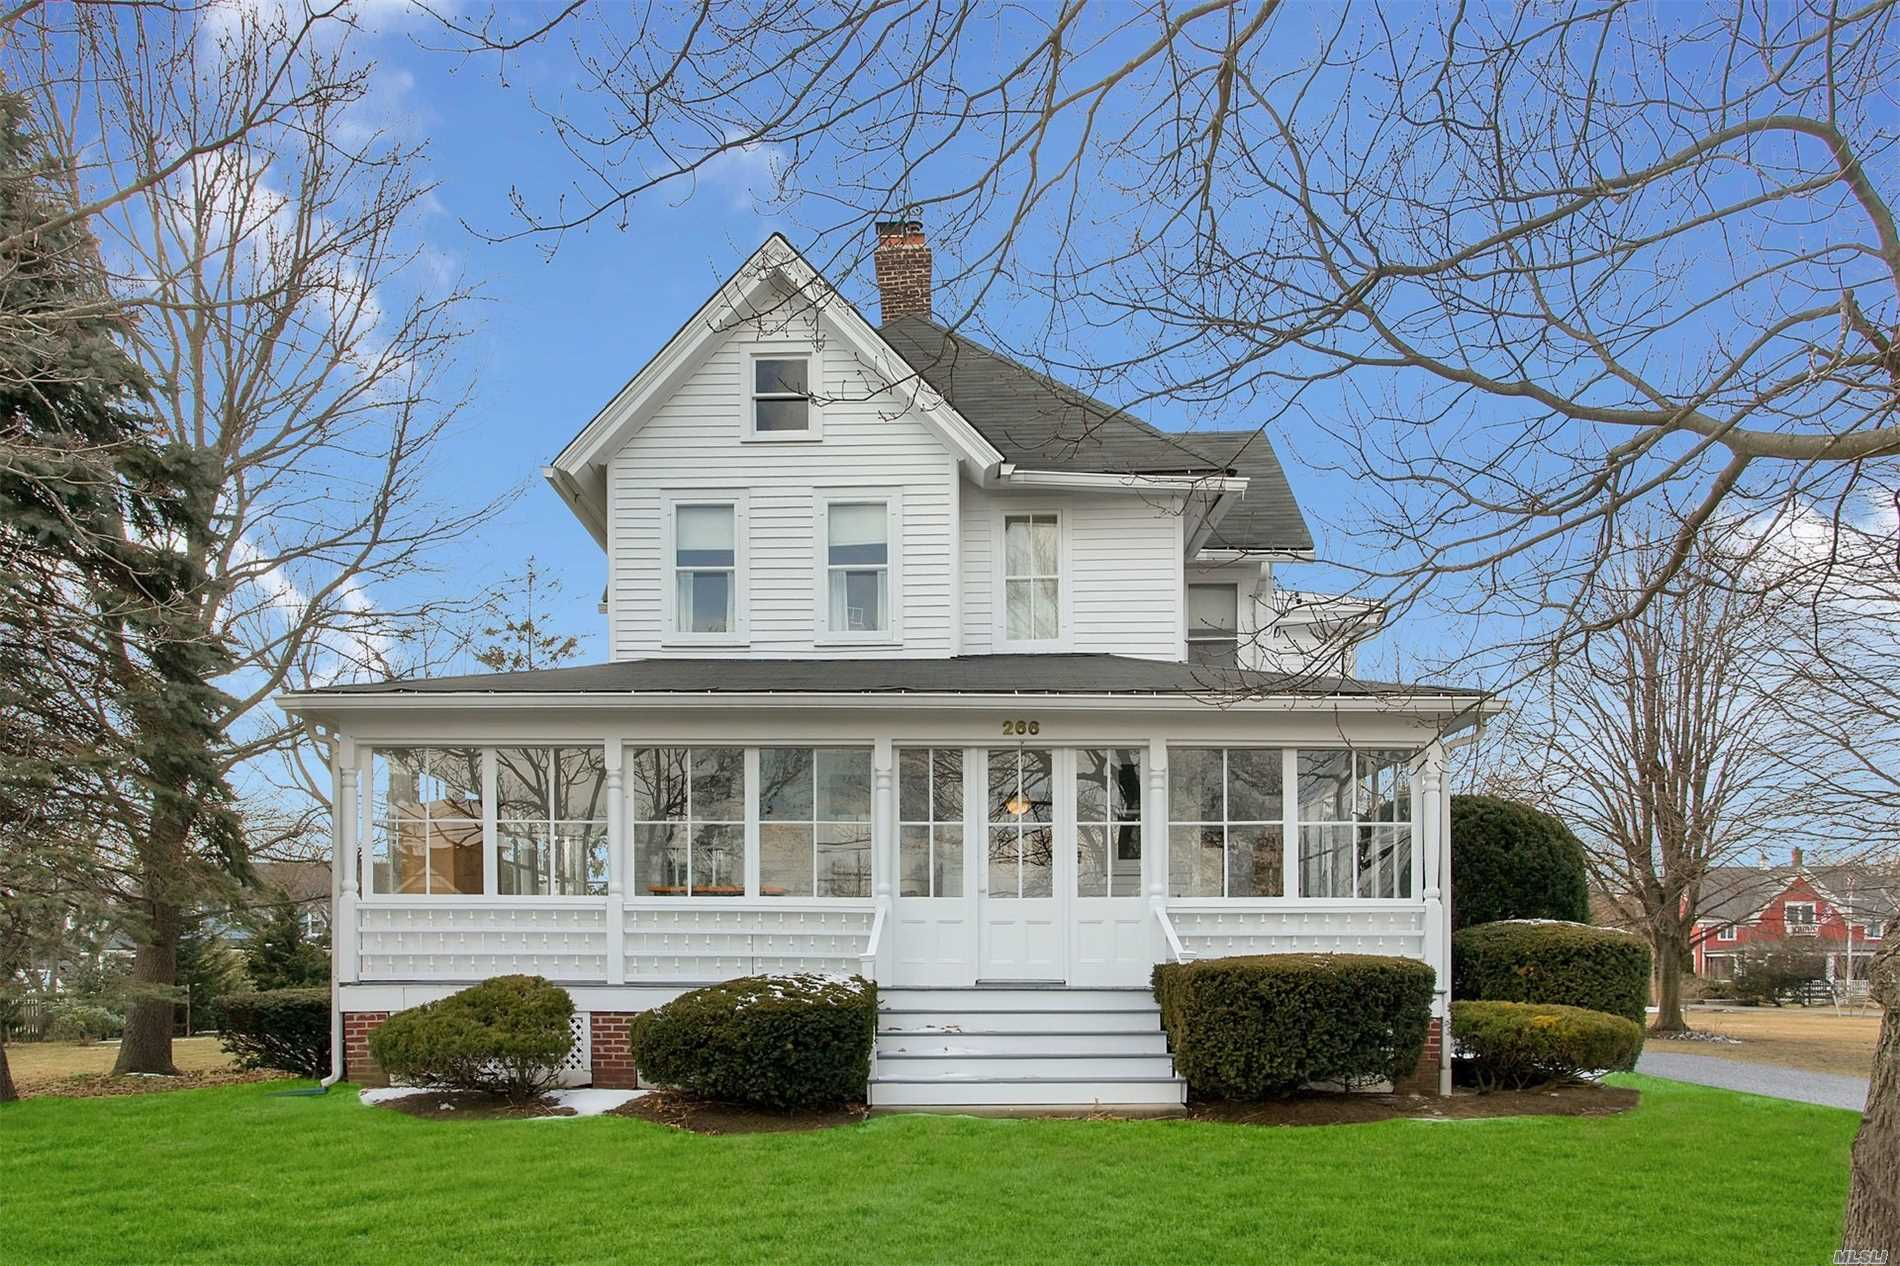 Gorgeous Turn Of The Century Colonial With Formal Entry, Formal Dining Room, Formal Living Room, Eat In Kitchen, Butlers Pantry, Wrap Porch, Heated Enclosed Porch, 6 Bedrooms, 3.5 Baths Beautiful Mouldings And Built Ins, Original Wavy Glass On Porch, Central Air, Gas Heat, Parklike Grounds, Low taxes 14, 647.69 (Reflects Basic Star And Village Taxes) Enjoy all this charming village has to offer!!